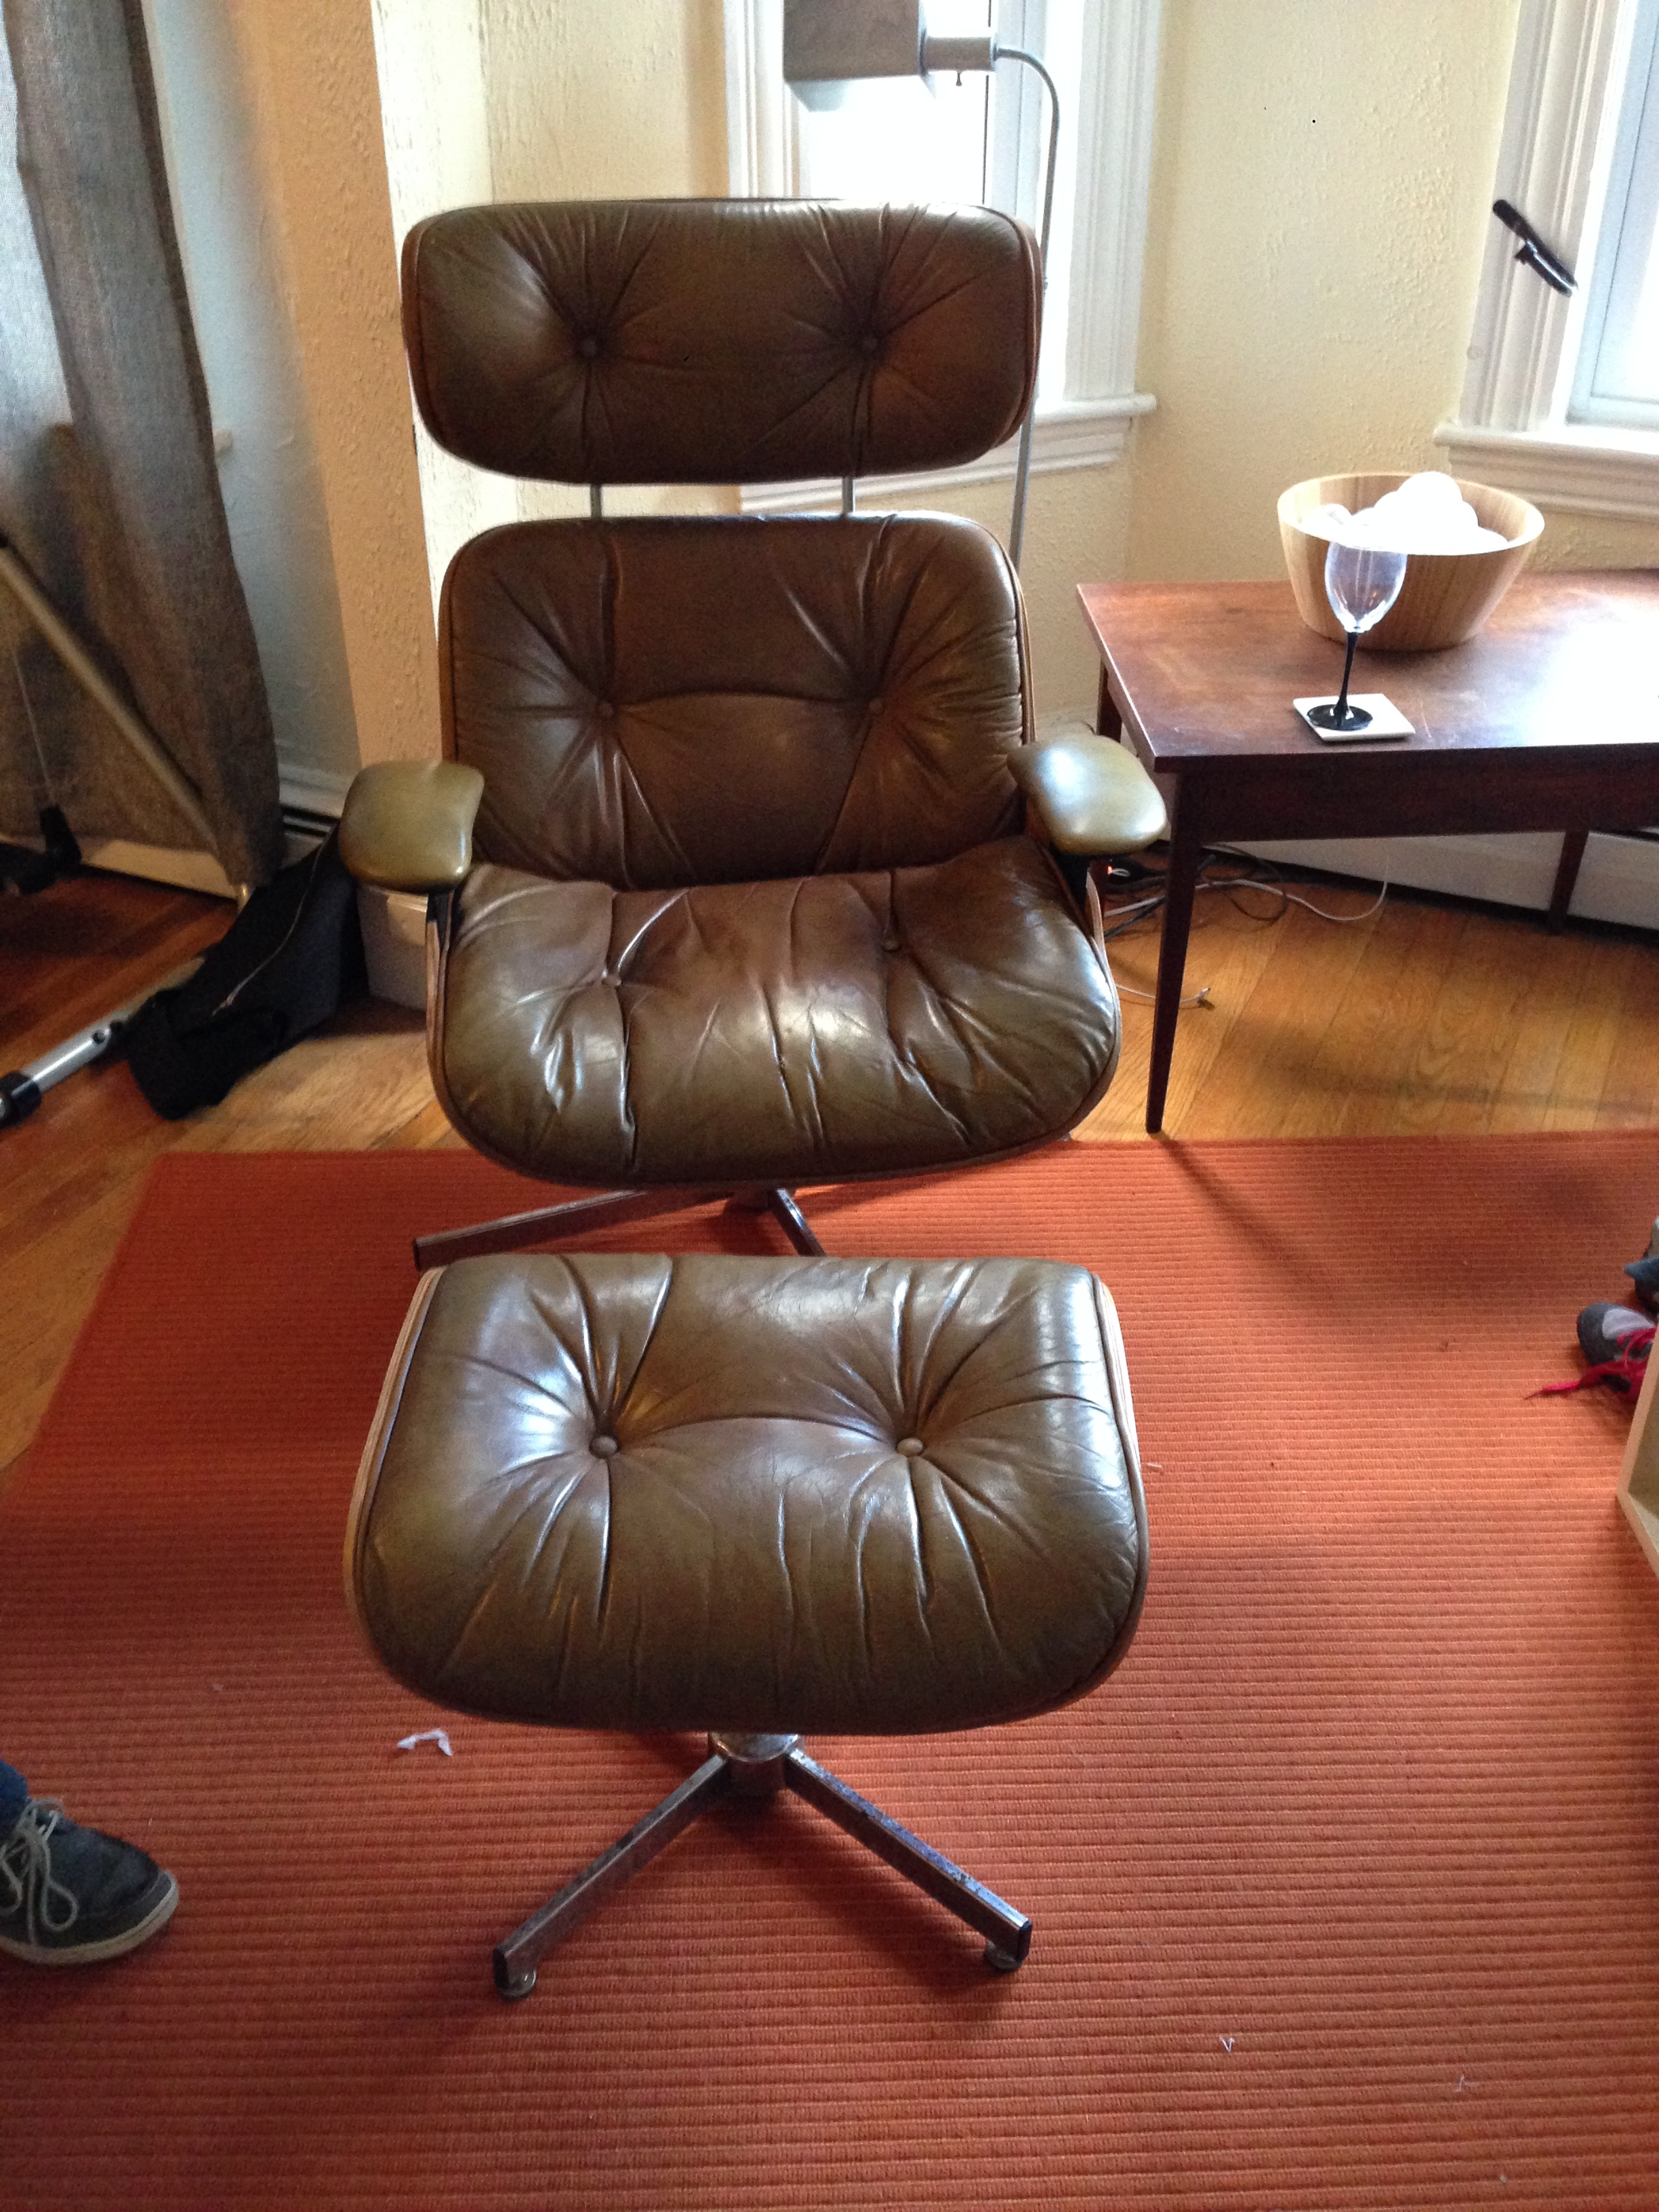 selig plycraft lounge chair parts swivel pillows restoration part one hijinks goods i found 2 of these matching early 60 s chairs with ottomans on craigslist for super cheap have always wanted an old eames but